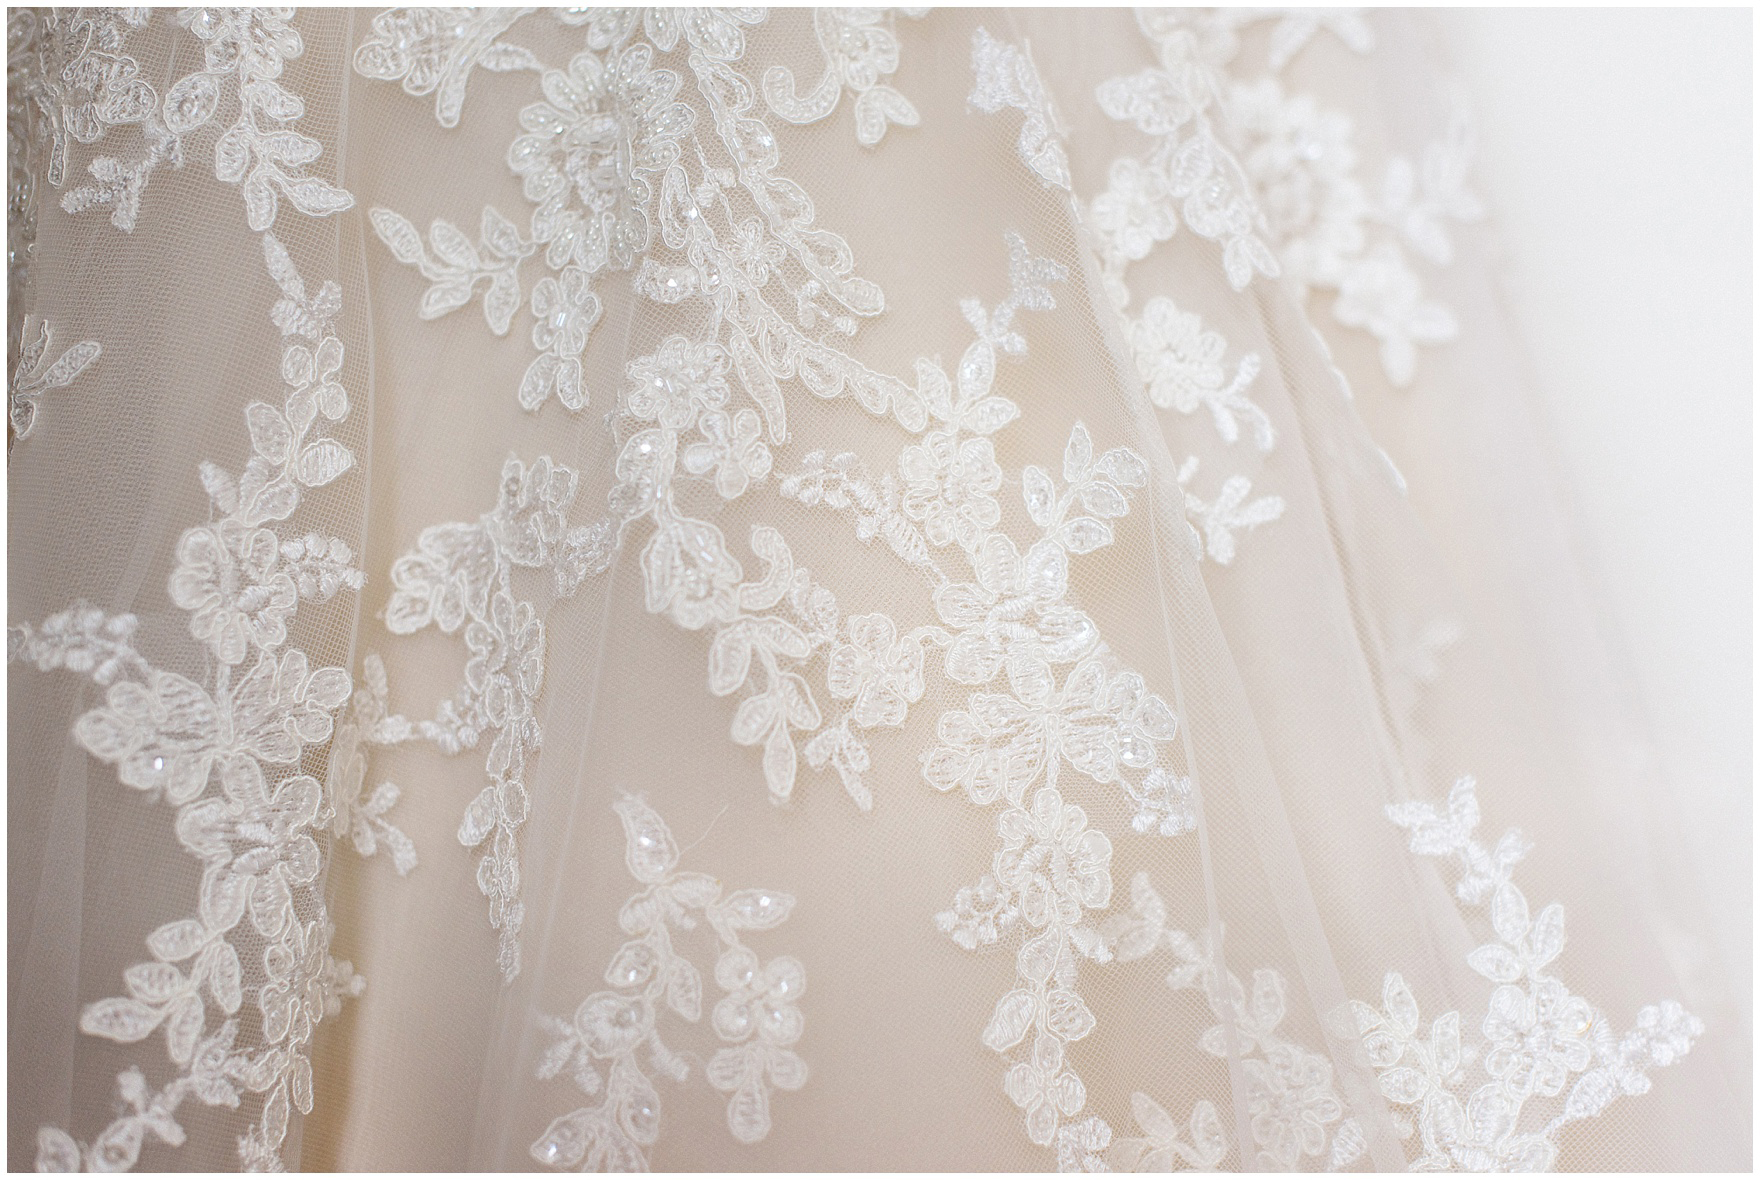 Details of a lace and tulle wedding gown for a Hotel Arista Naperville wedding.